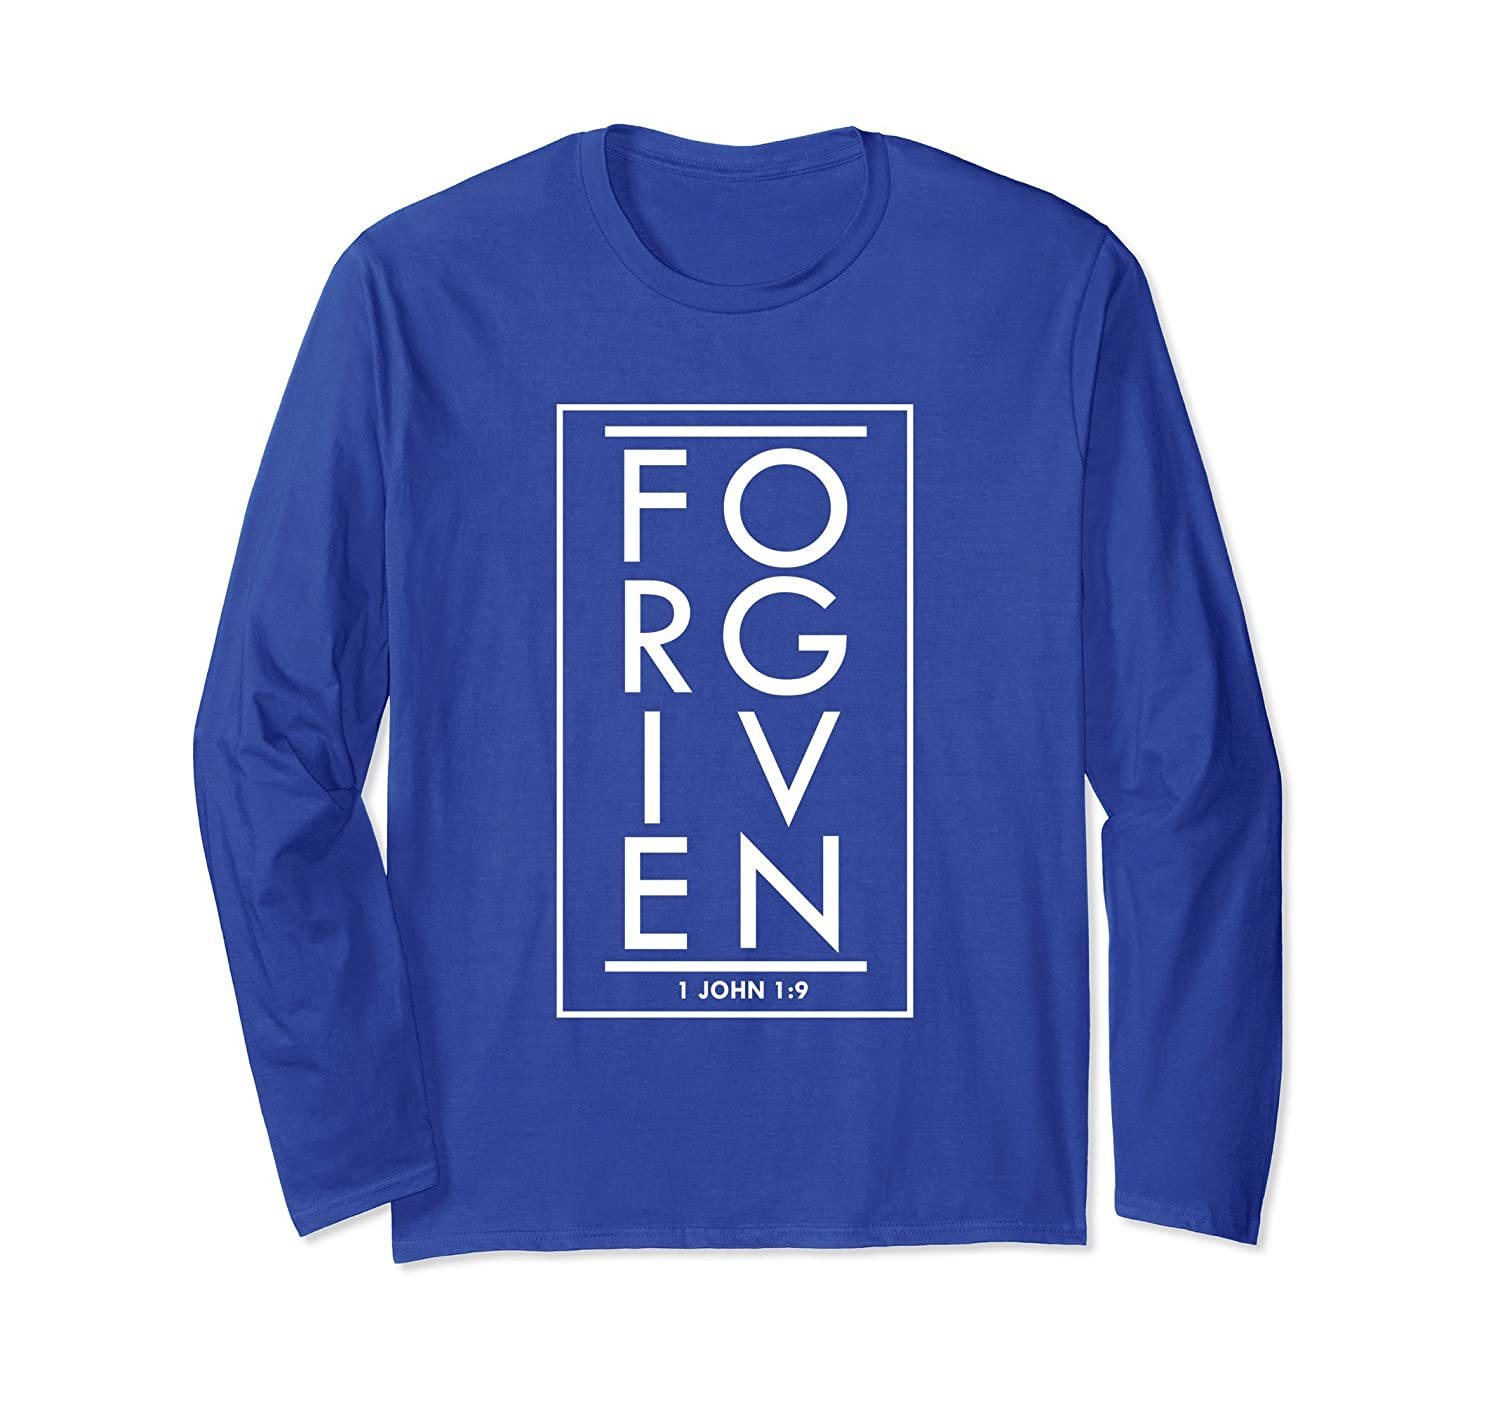 Forgiven 1 John 1:9 Scripture Faith Based Christian T-Shirts-Rose